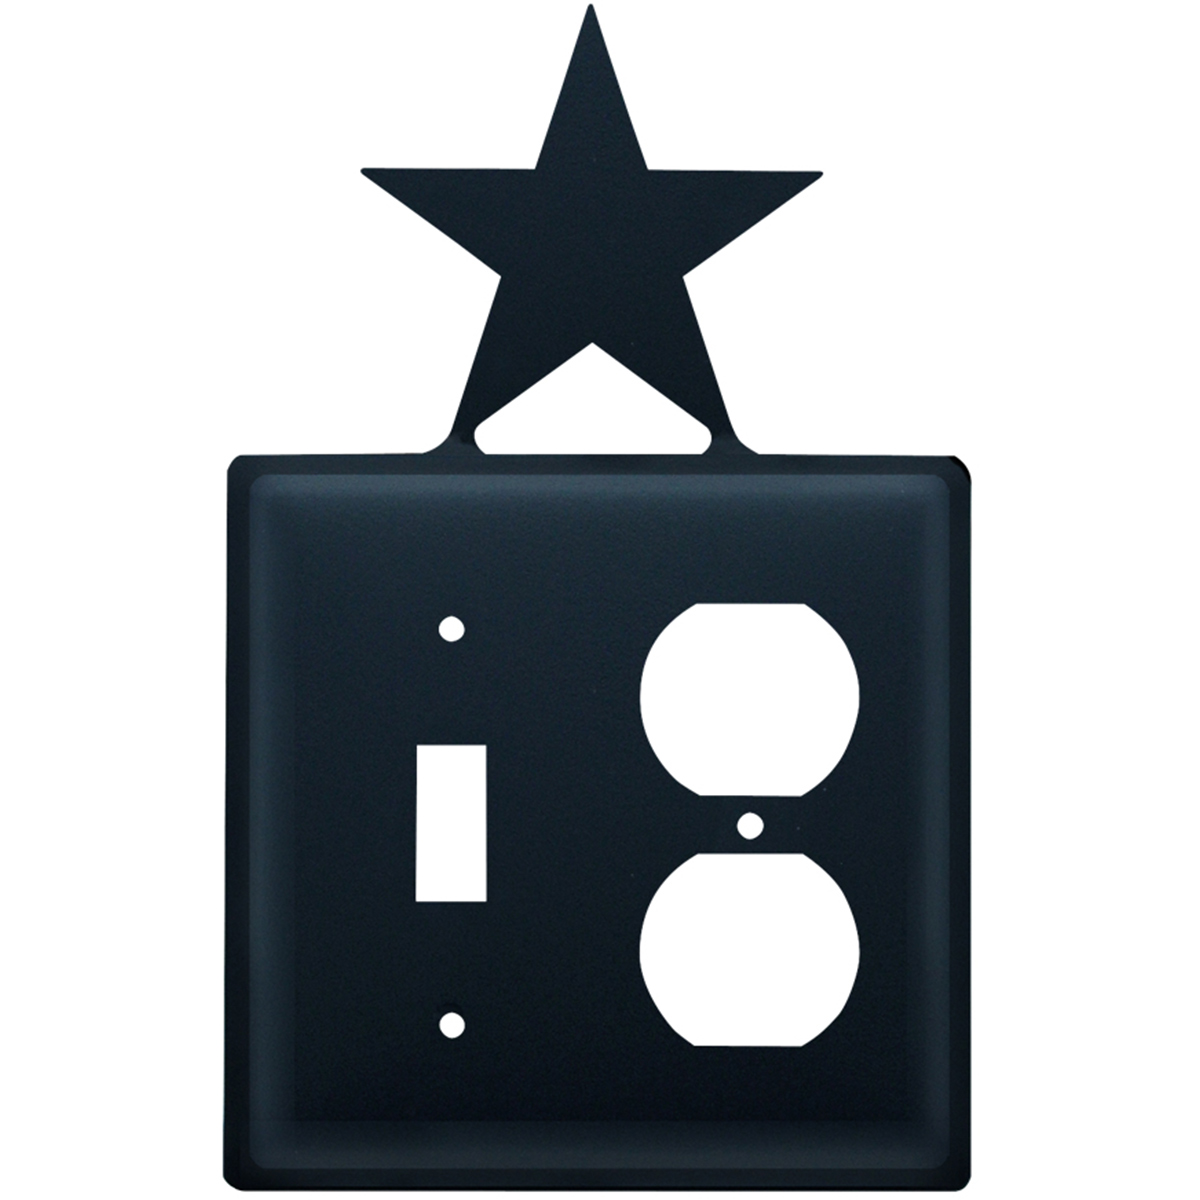 Star Switch & Outlet Cover